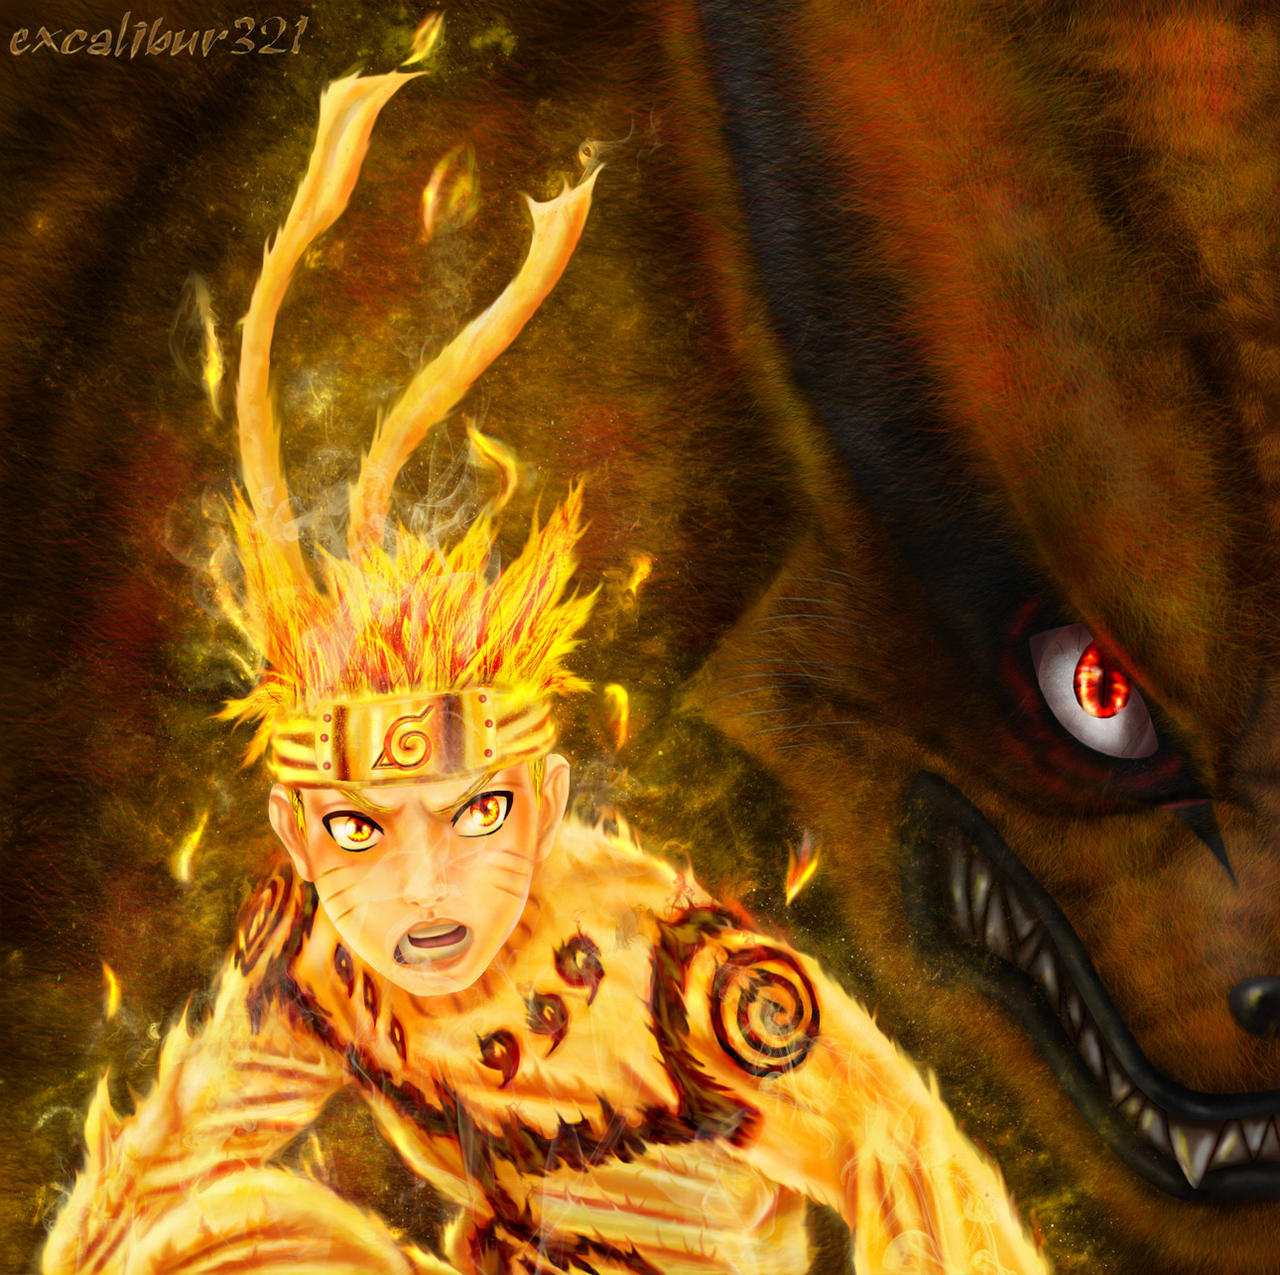 Naruto and Kurama by excalibur321